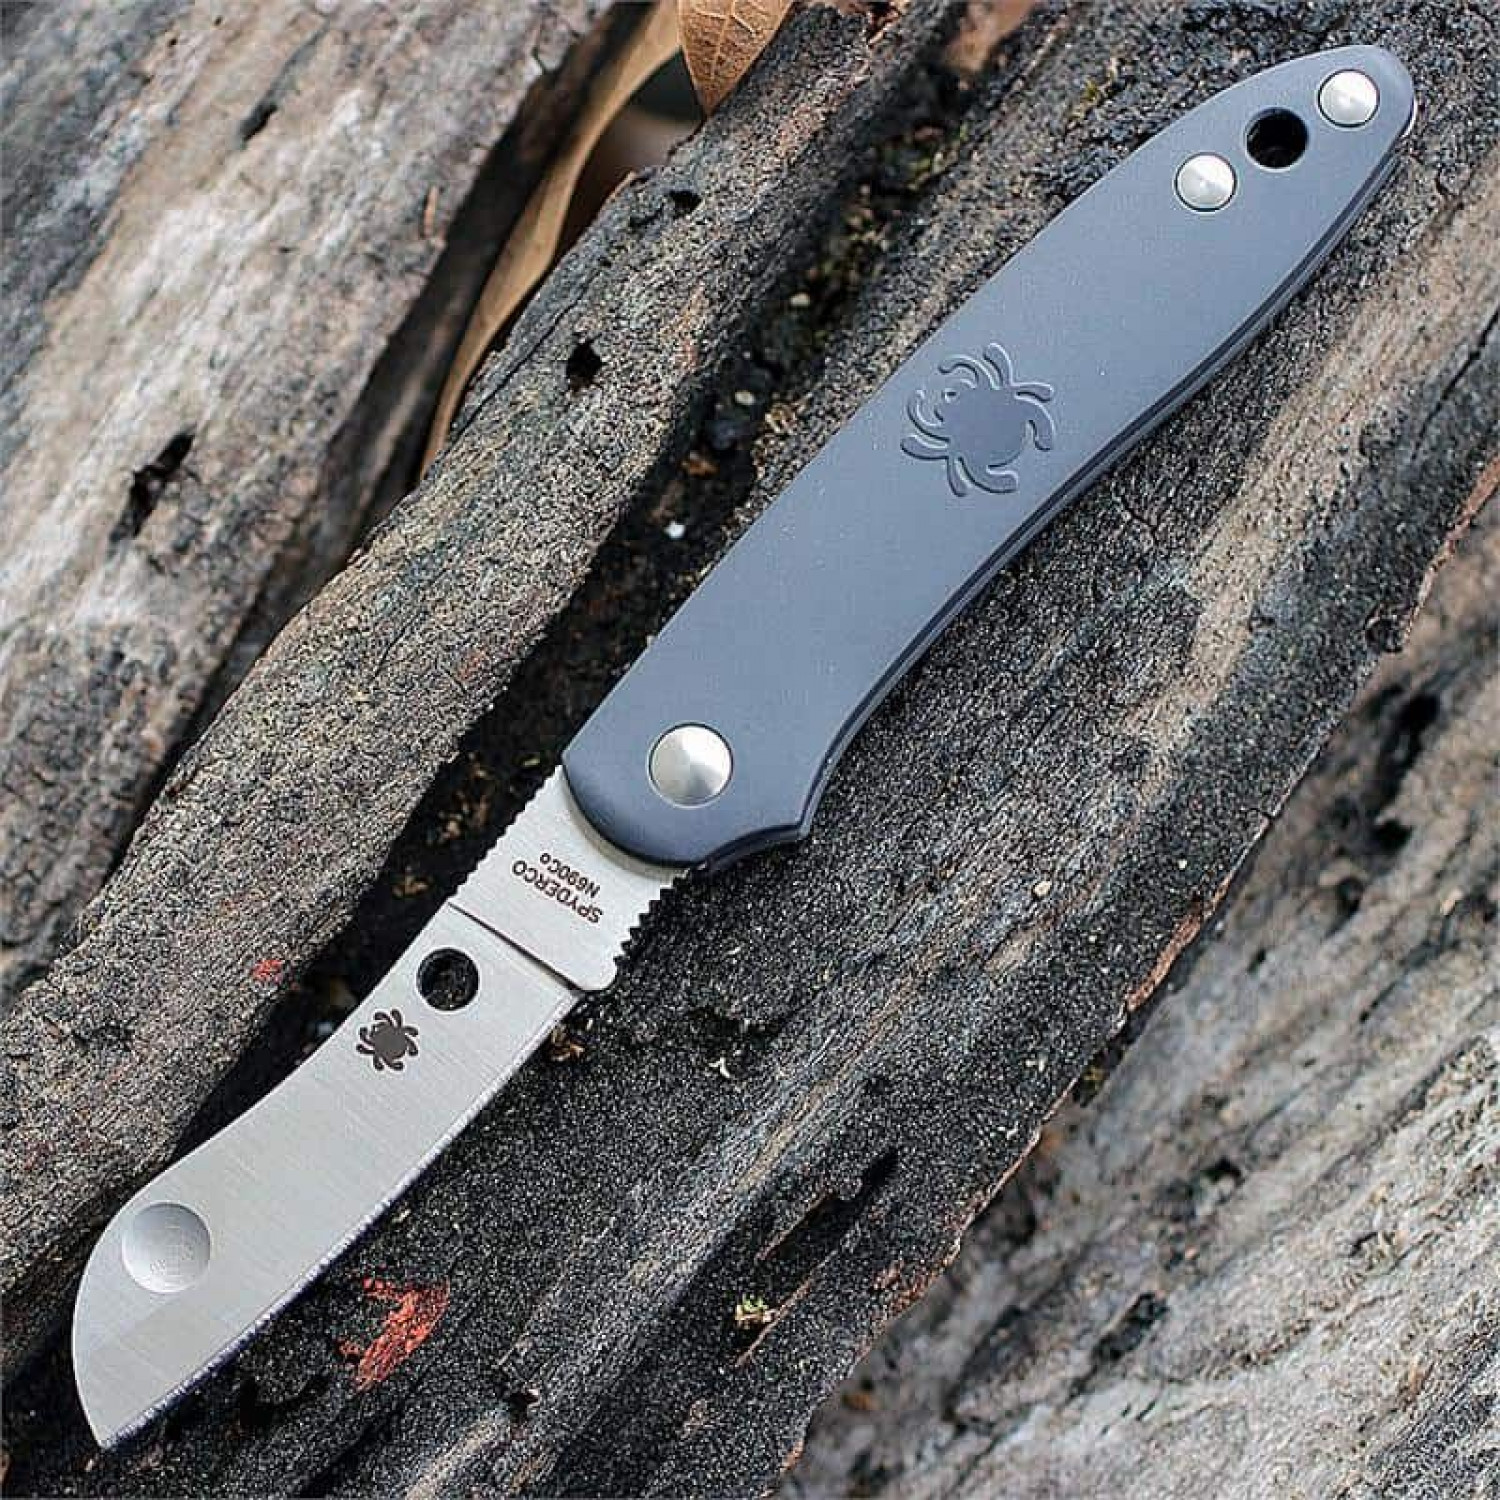 Фото 7 - Нож складной Roadie™ Spyderco 189PGY TSA Knife (Transportation Security Administration), сталь N690Co Satin Plain, рукоять термопластик FRN, серый